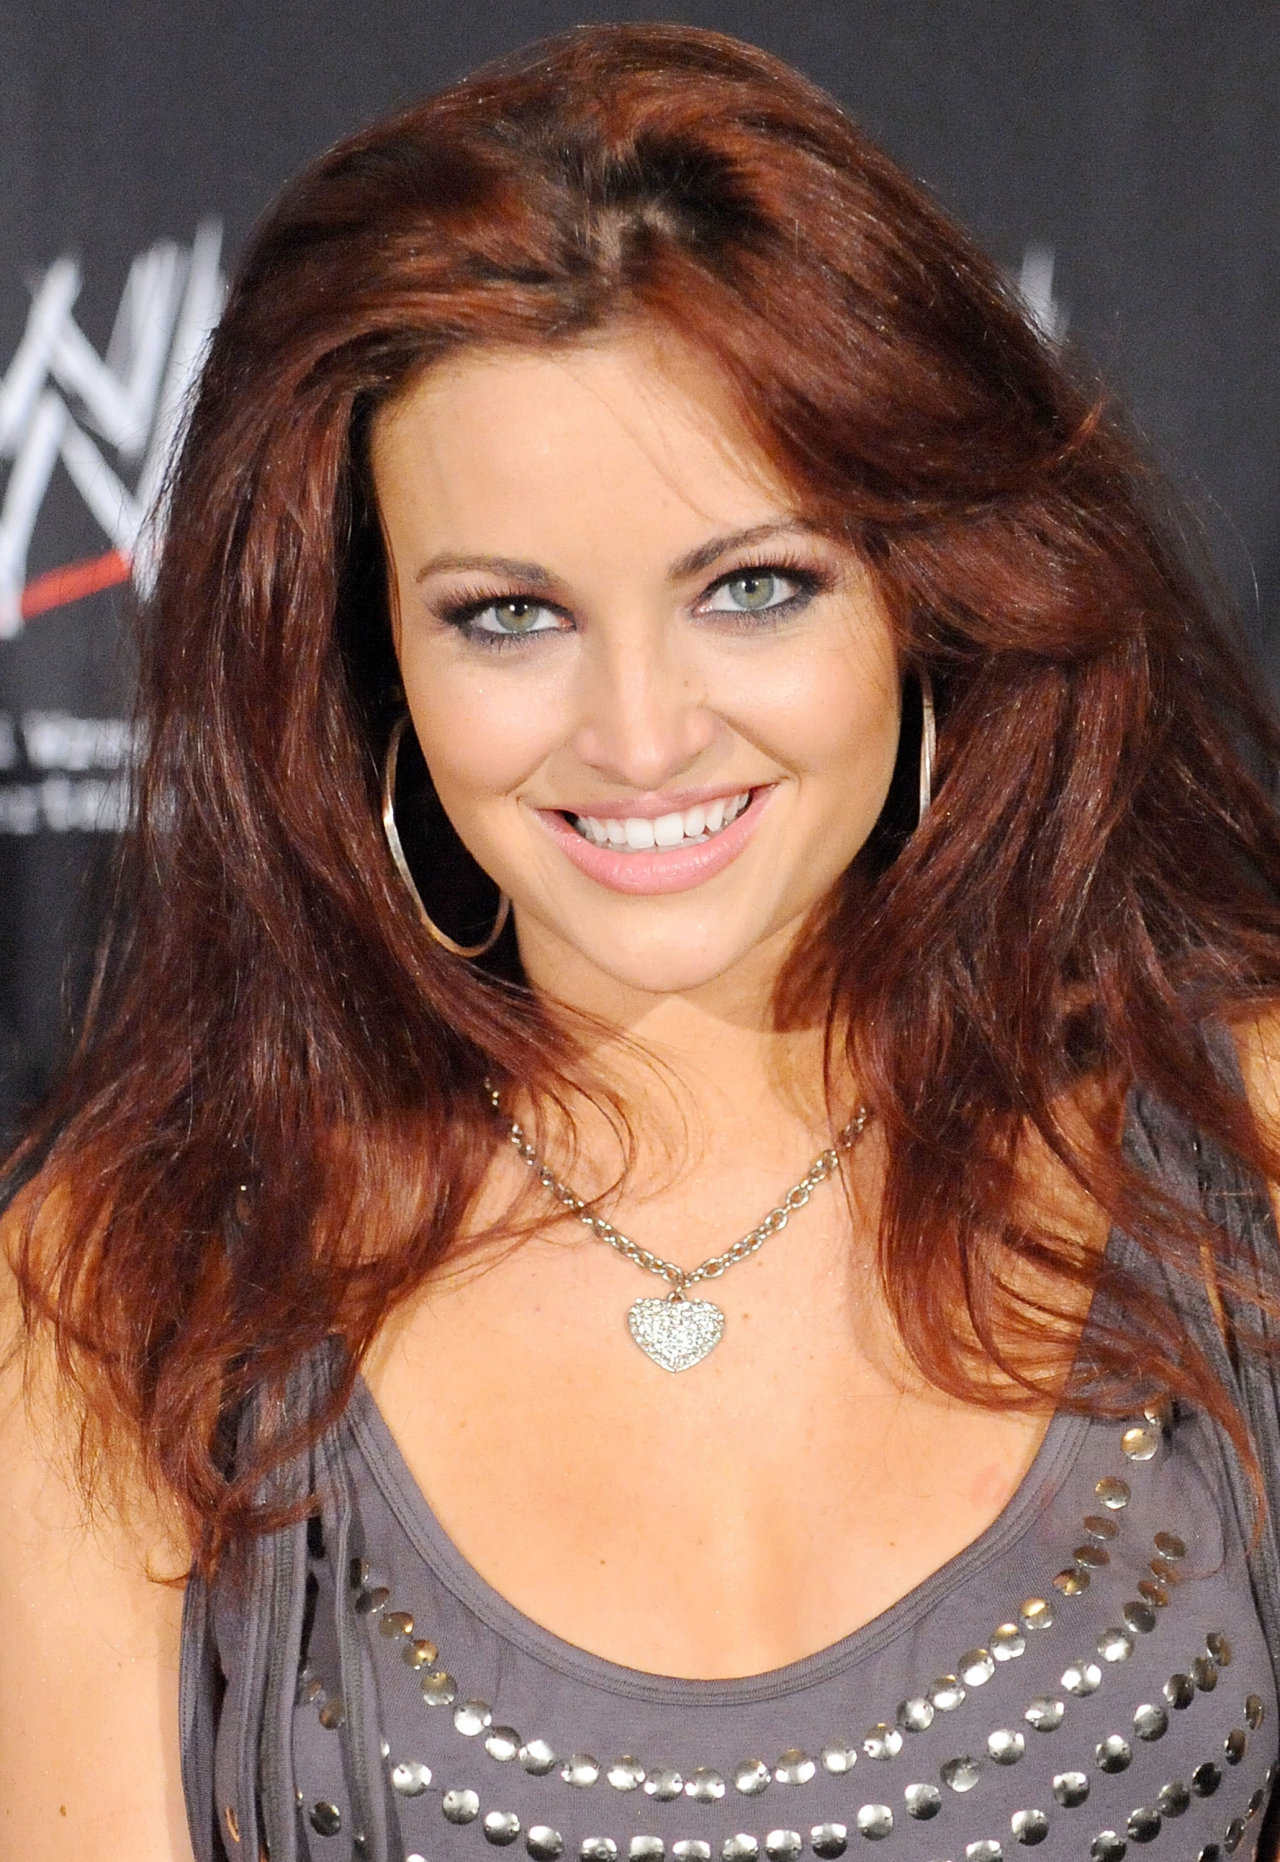 Maria Kanellis photos